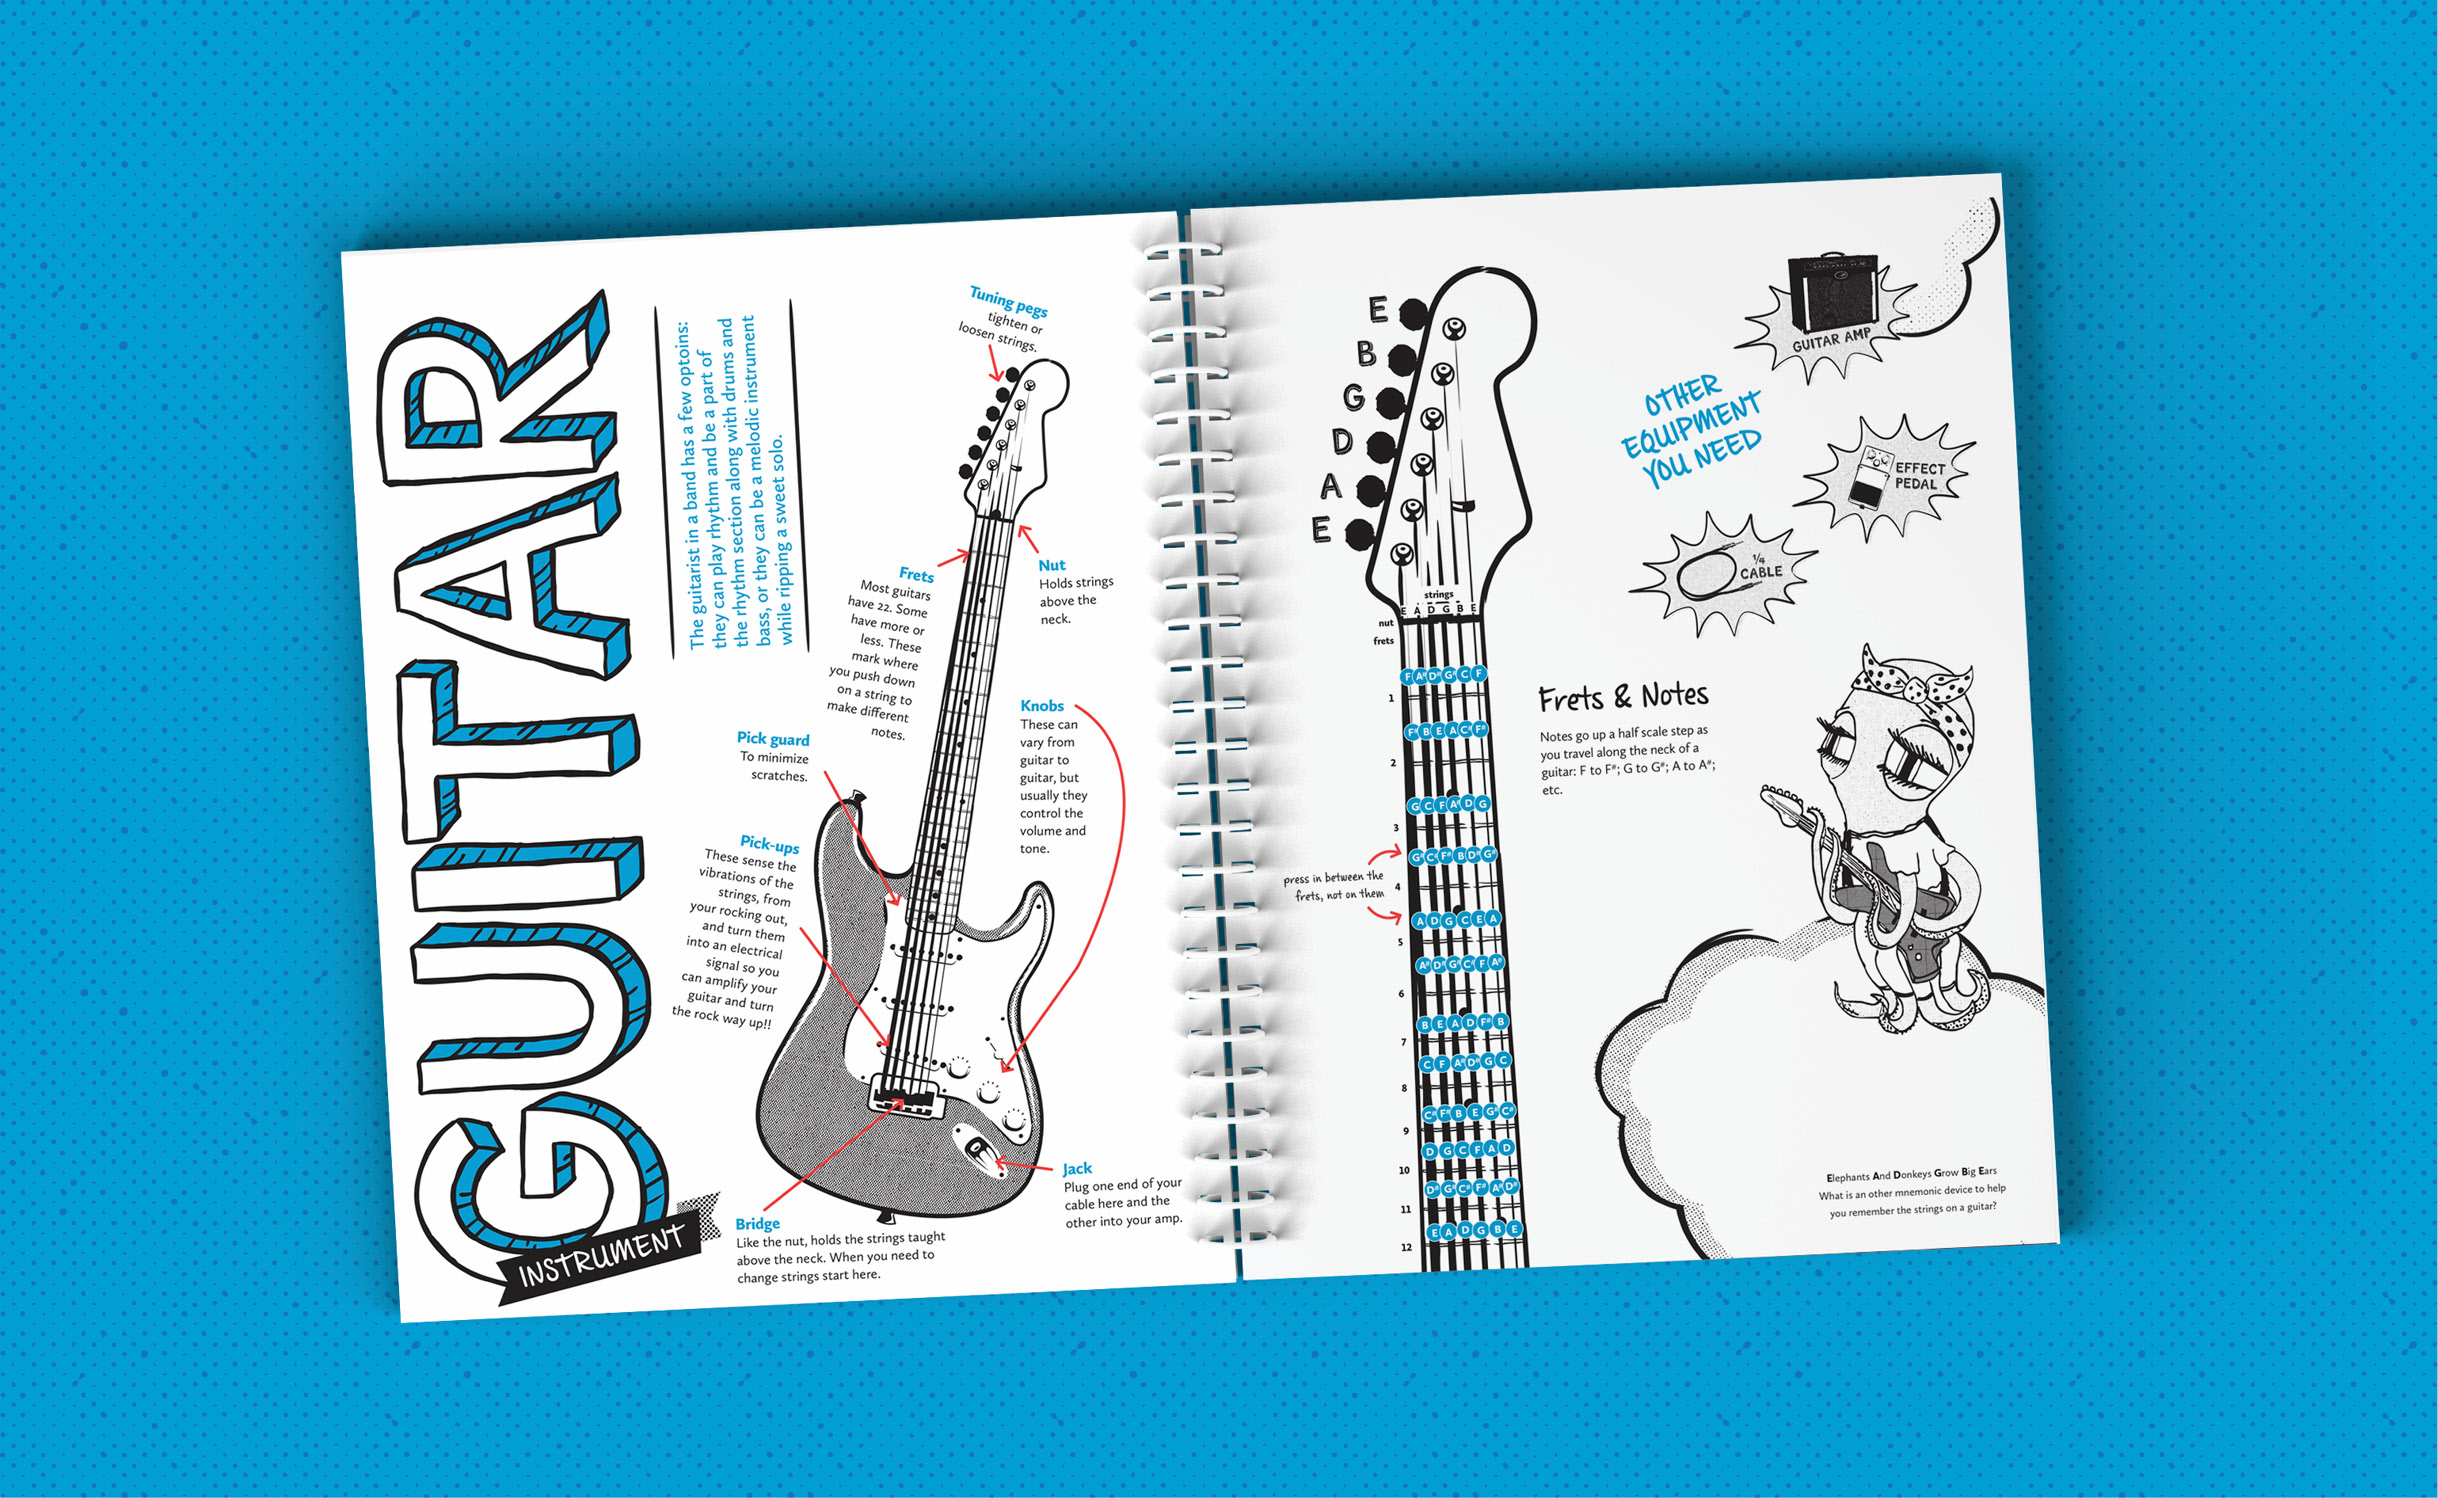 Inside spread of the workbook showing the parts of the guitar and a diagram of the fretboard with all the notes labeled. The background of the image is blue with an purple dot pattern.